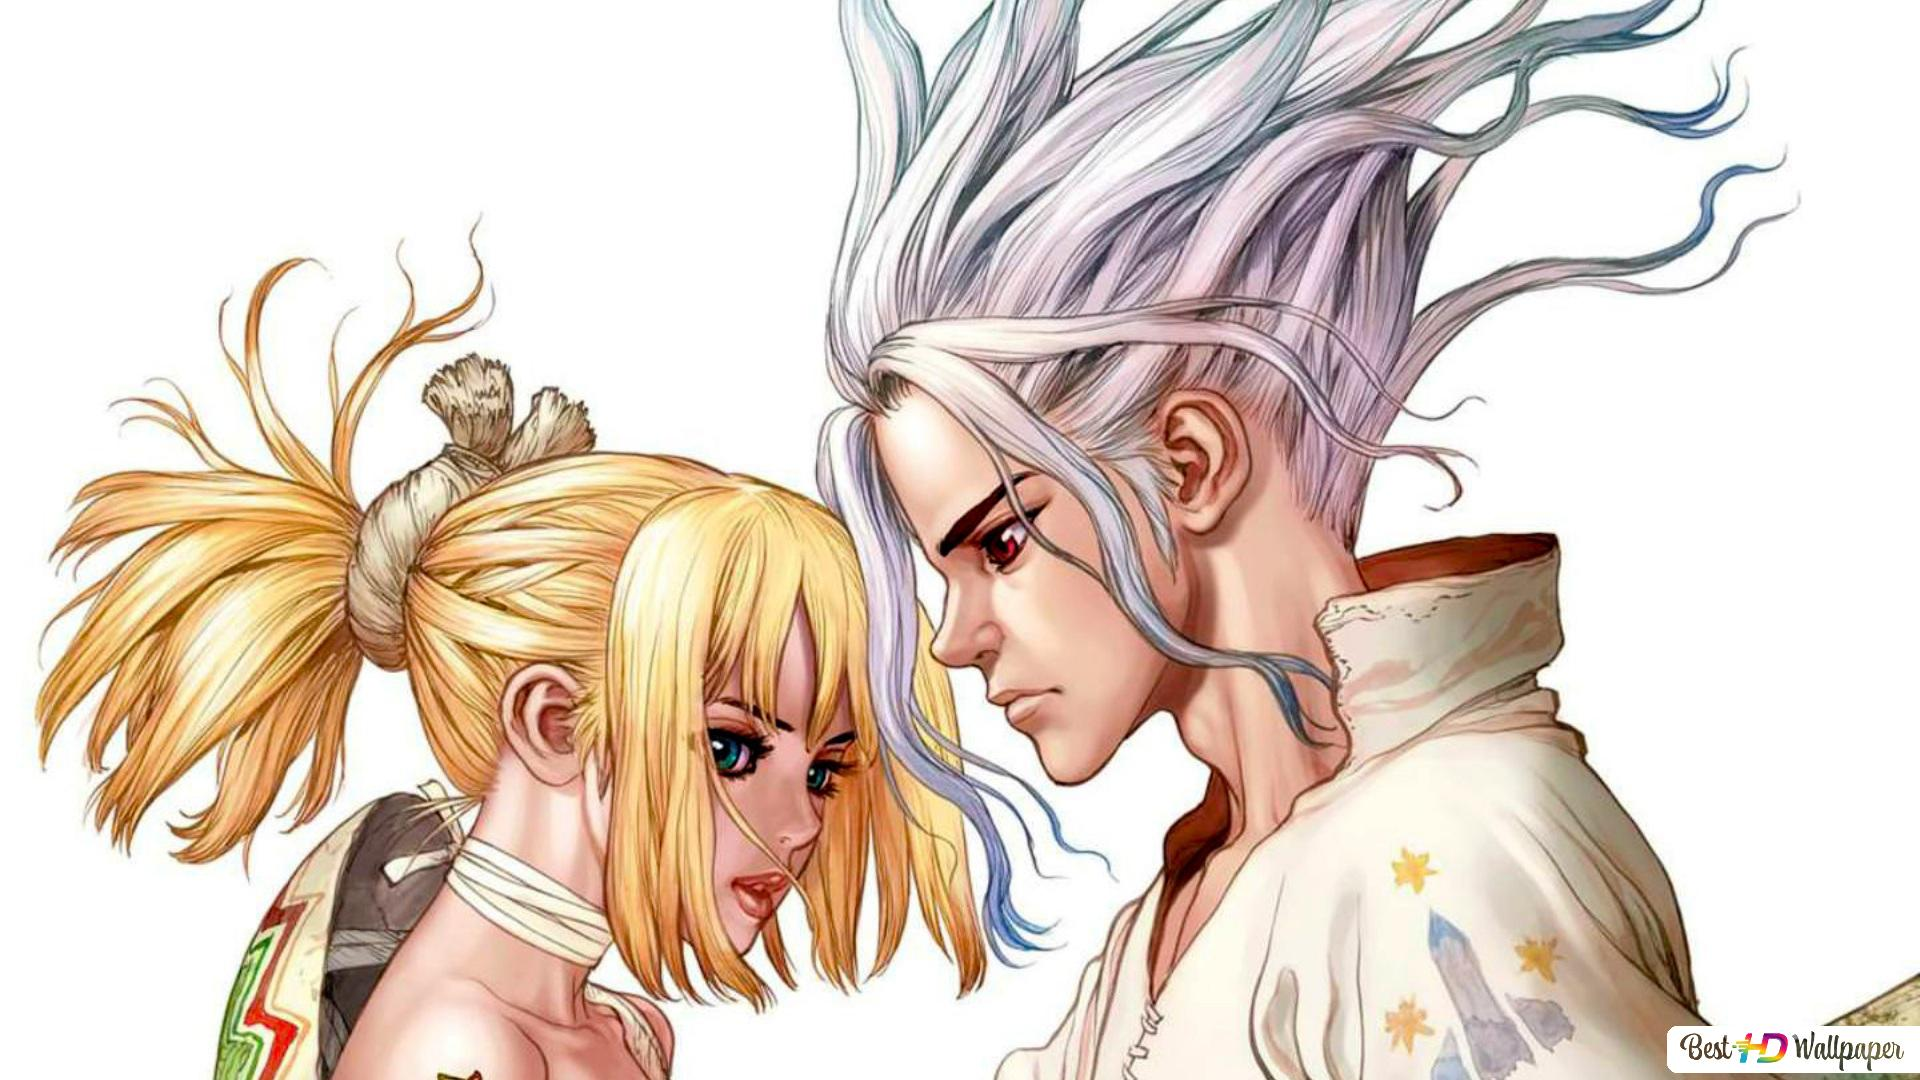 Dr Stone Kohaku Senku Ishigami Hd Wallpaper Download All art that is posted, must credit the original artist.if you post something that isn't yours, credit the original artist/source in the. dr stone kohaku senku ishigami hd